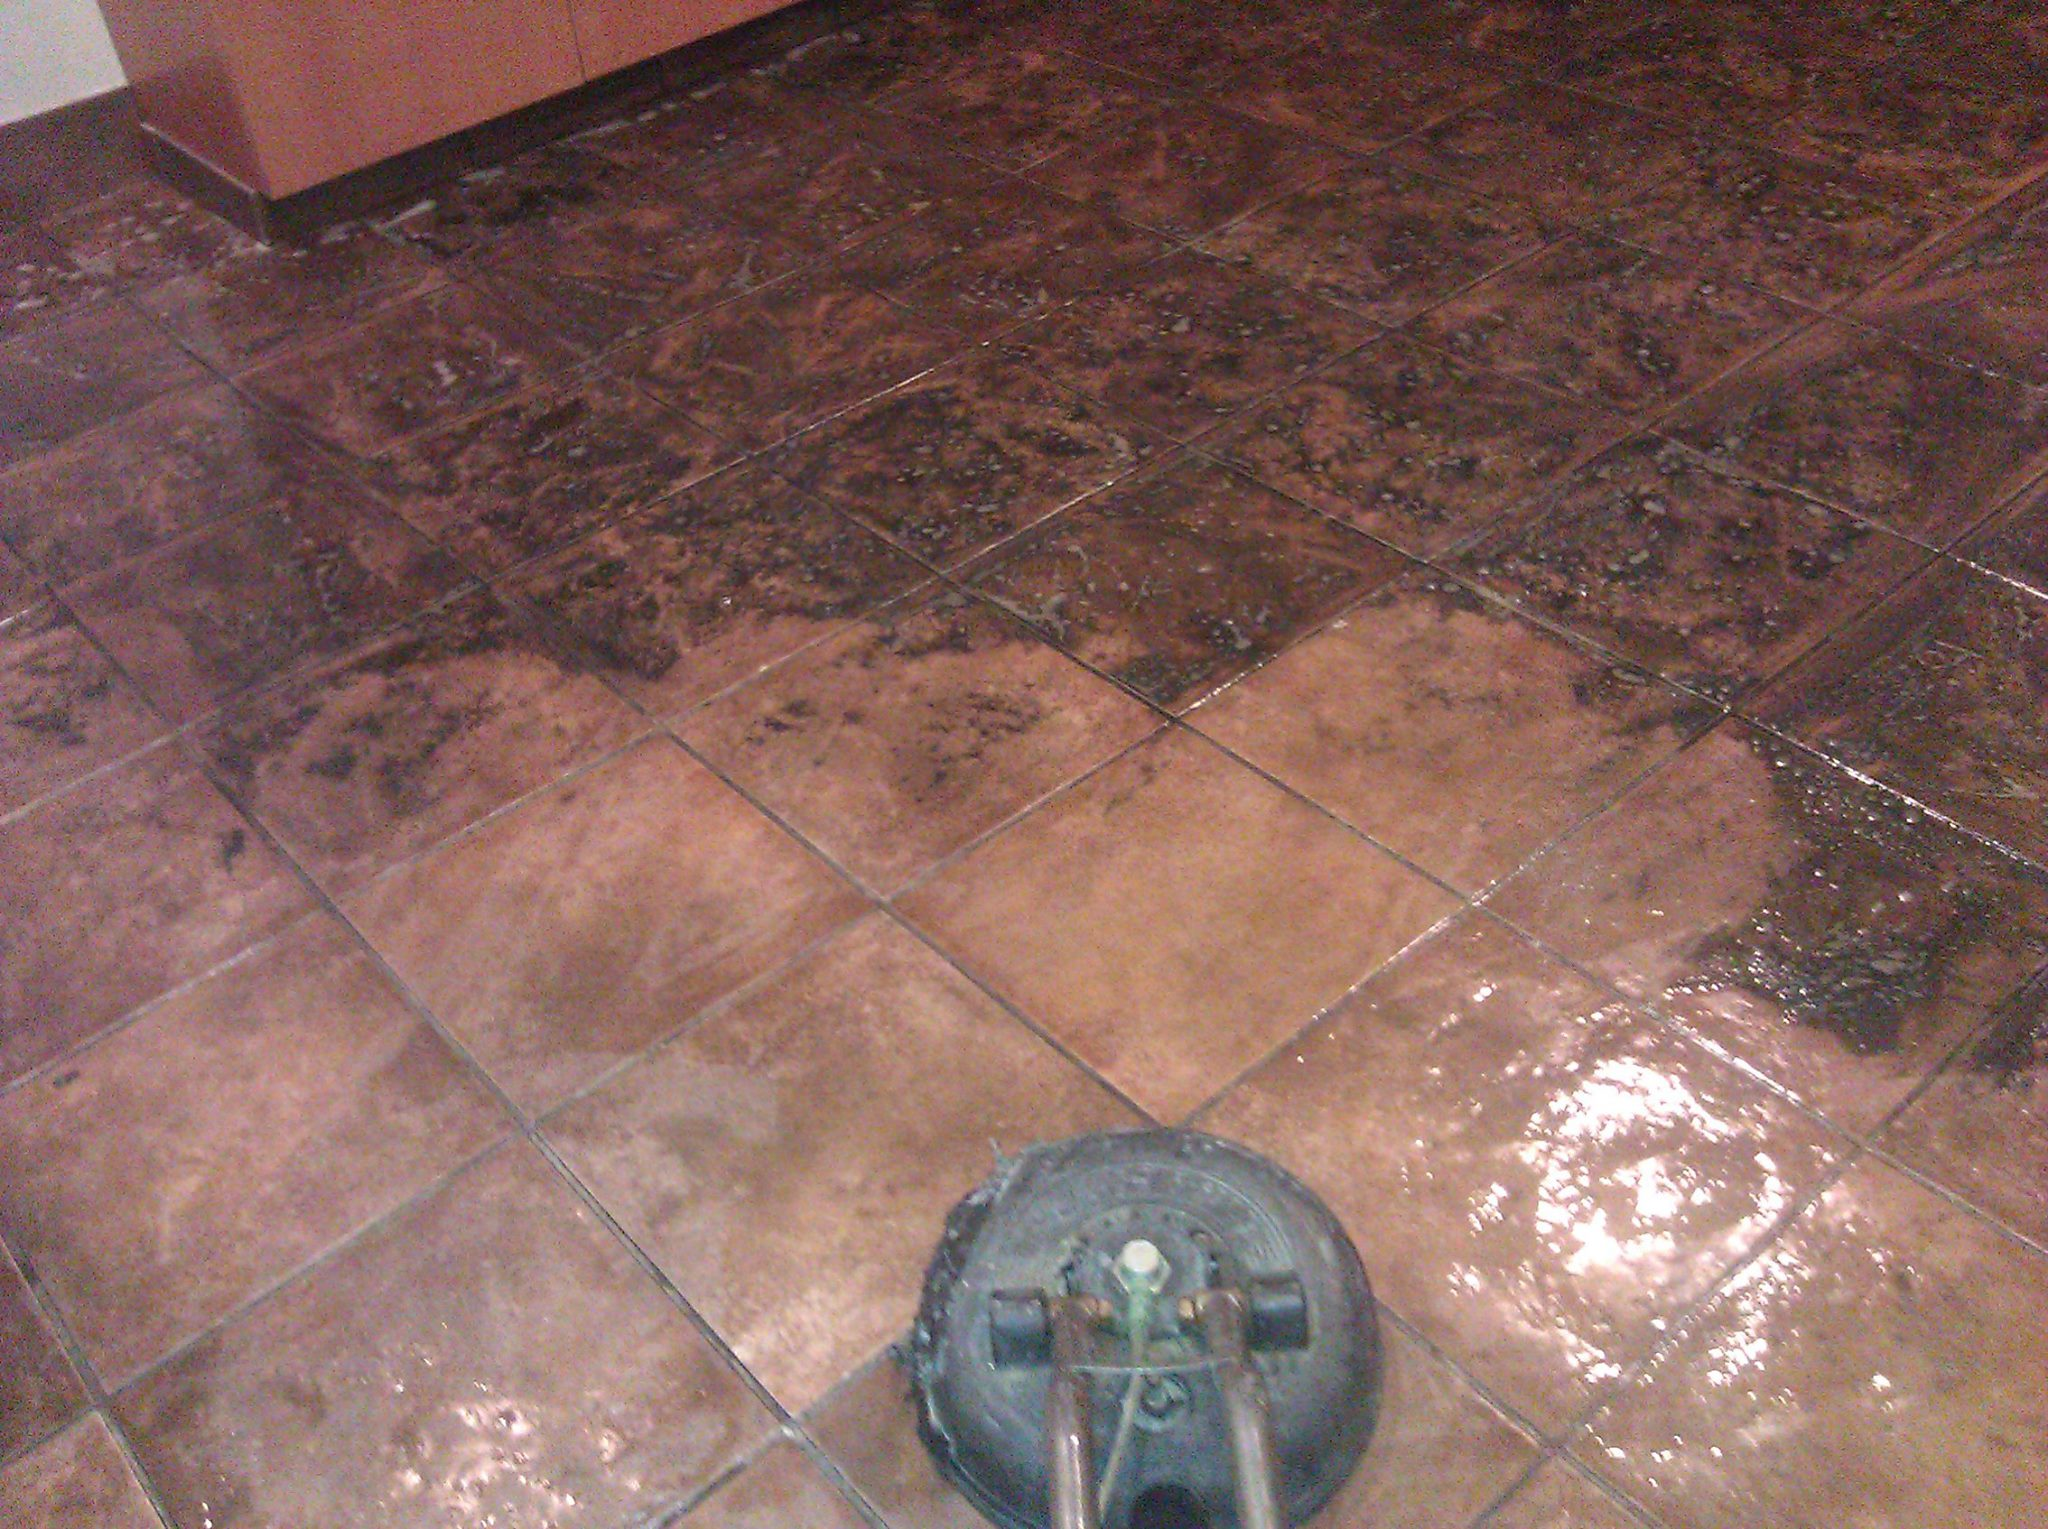 Esmerios Monster Guide To Tile And Grout Cleaning Chino Hills Ca